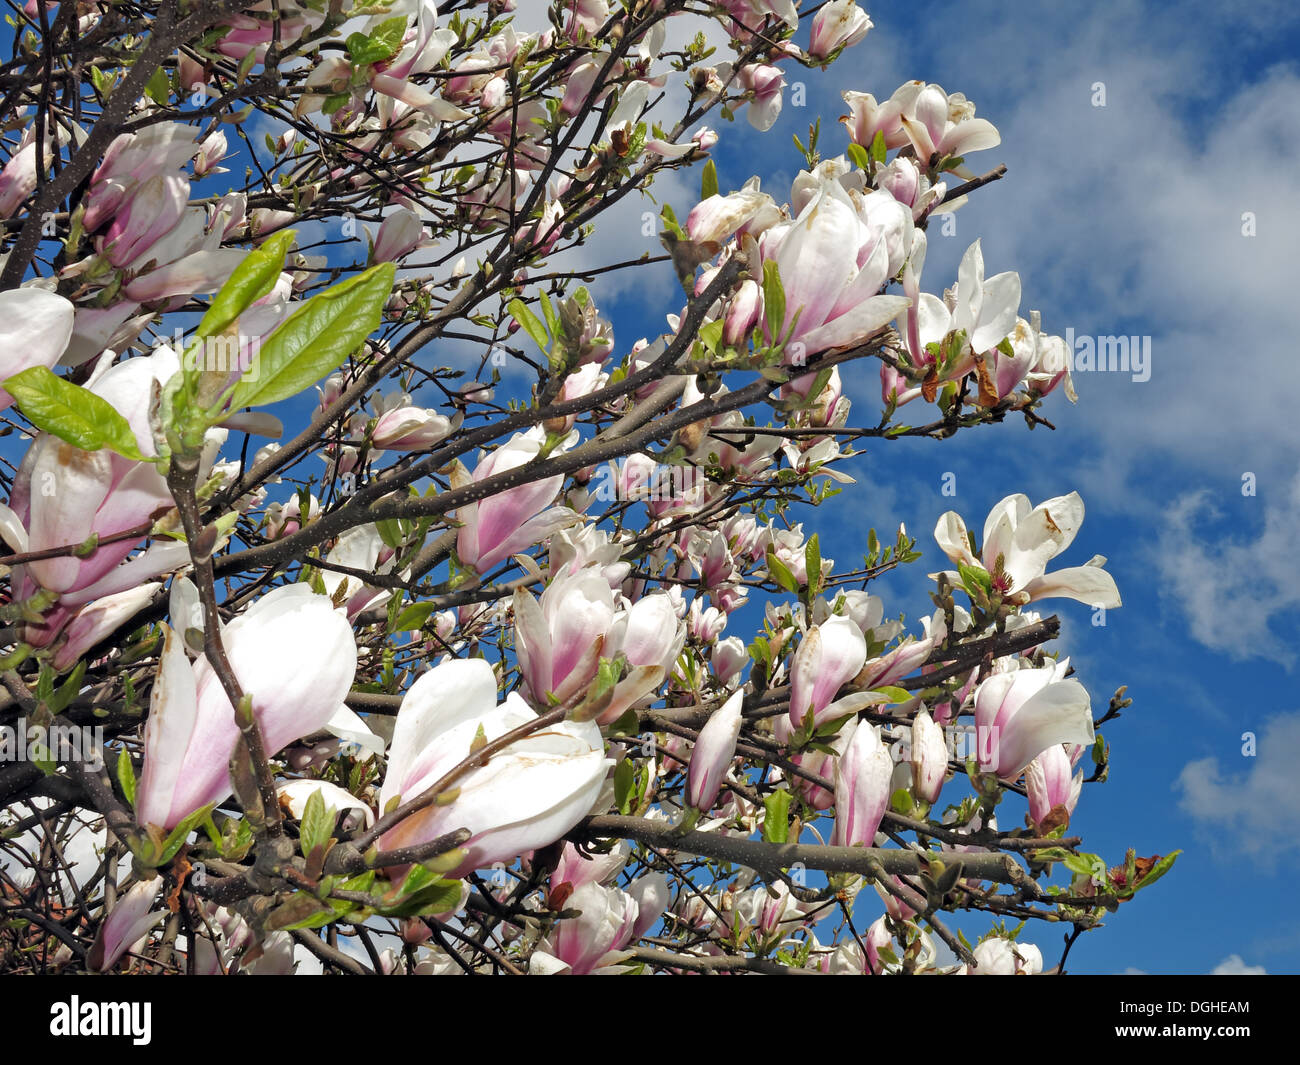 Magnolia shrub flowers cream in Spring season Europe - Stock Image